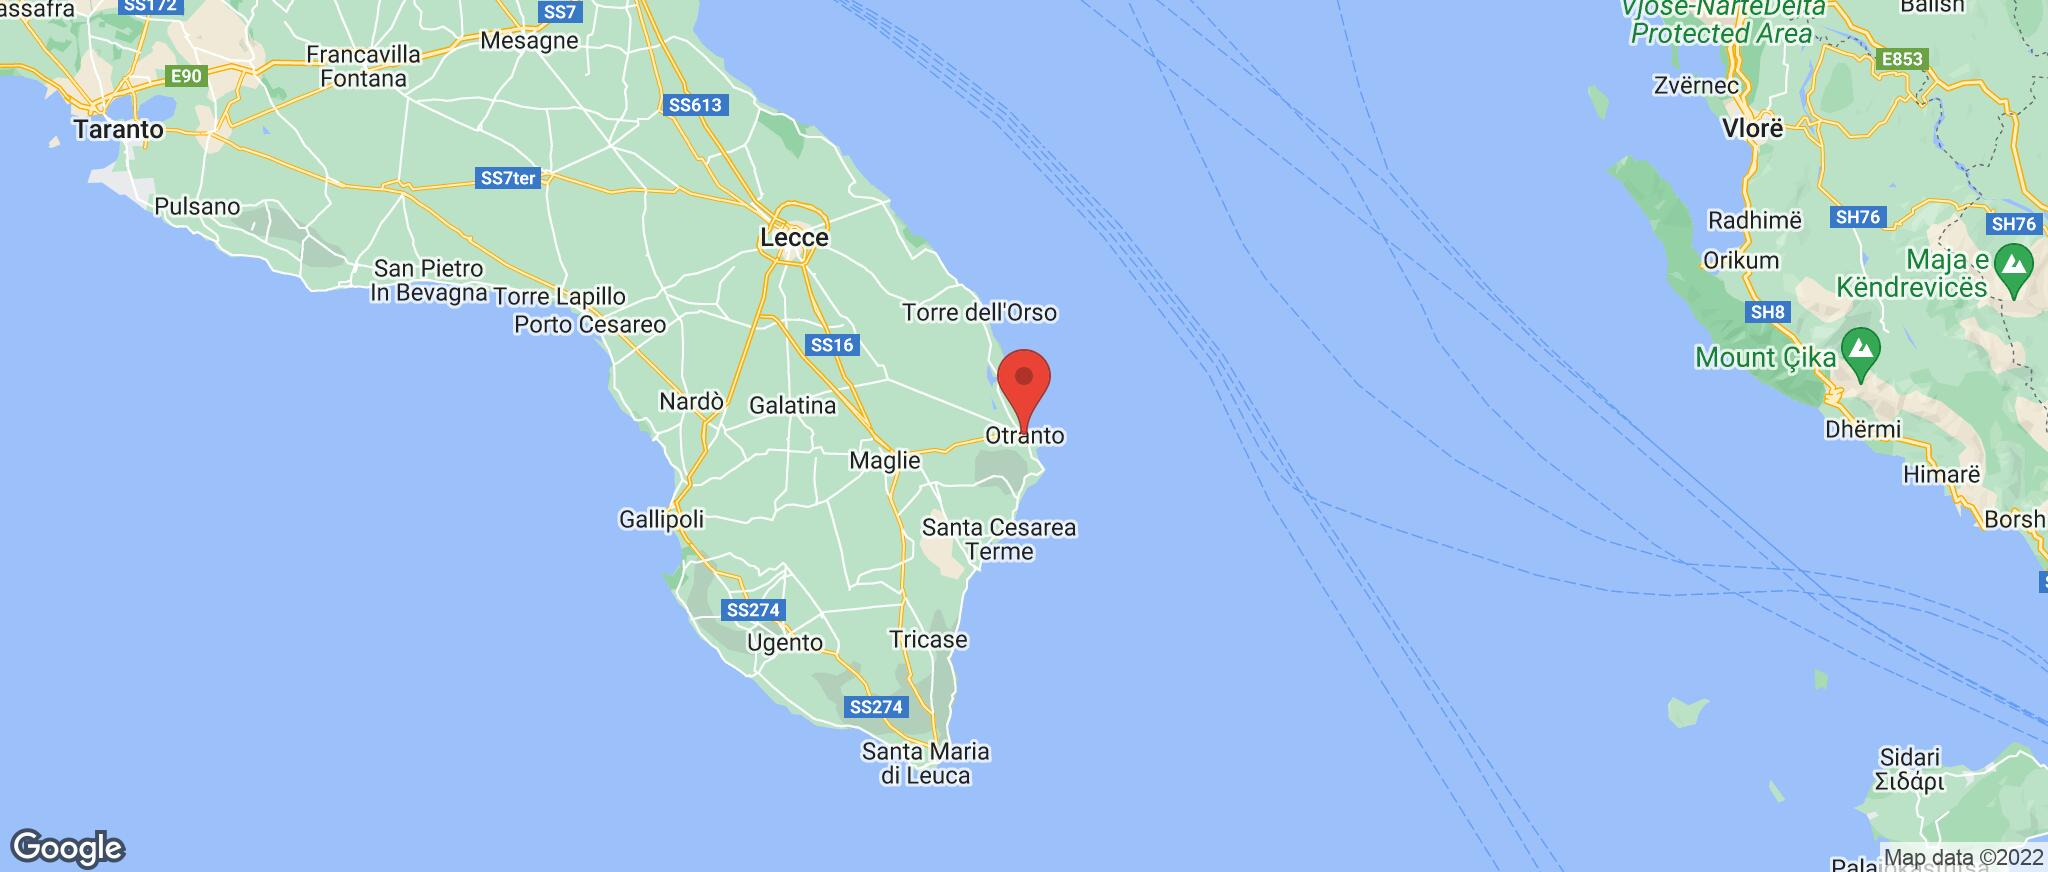 Map showing the location of Otranto